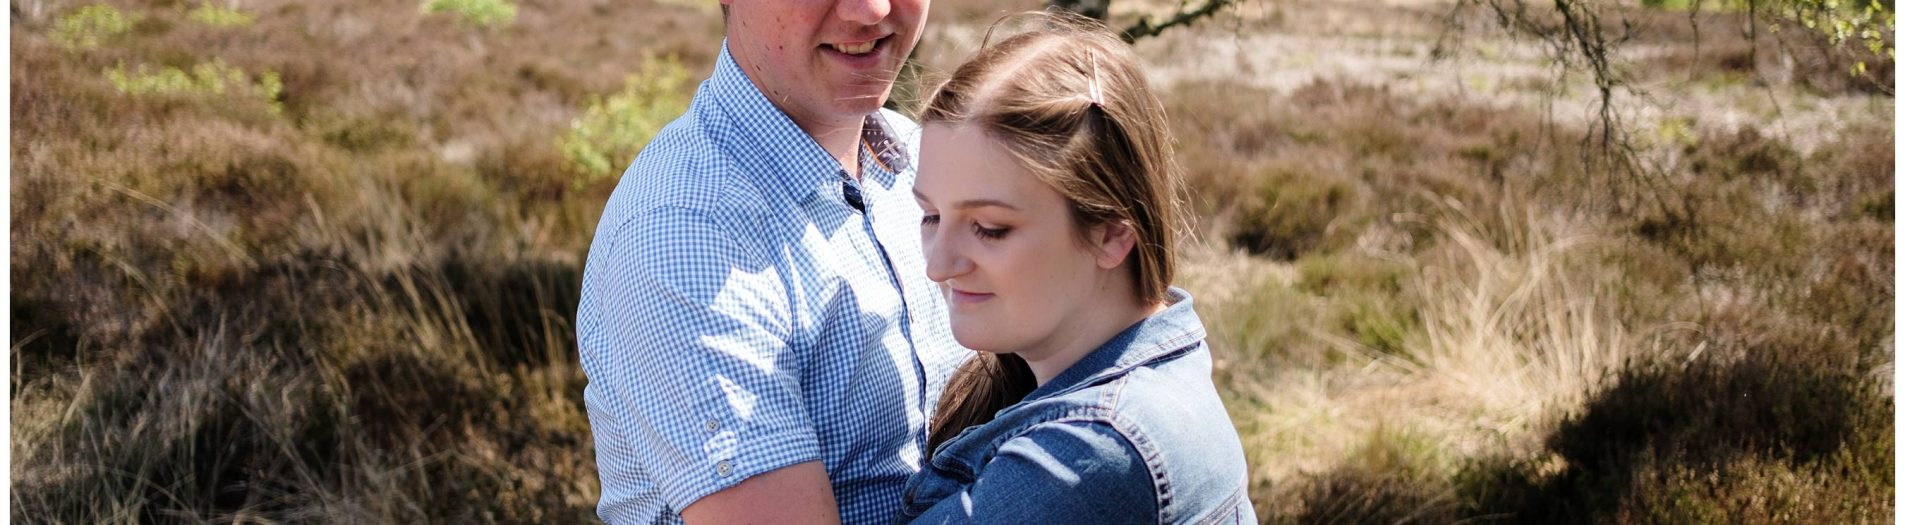 Scarborough Engagement Shoot/Danielle and James